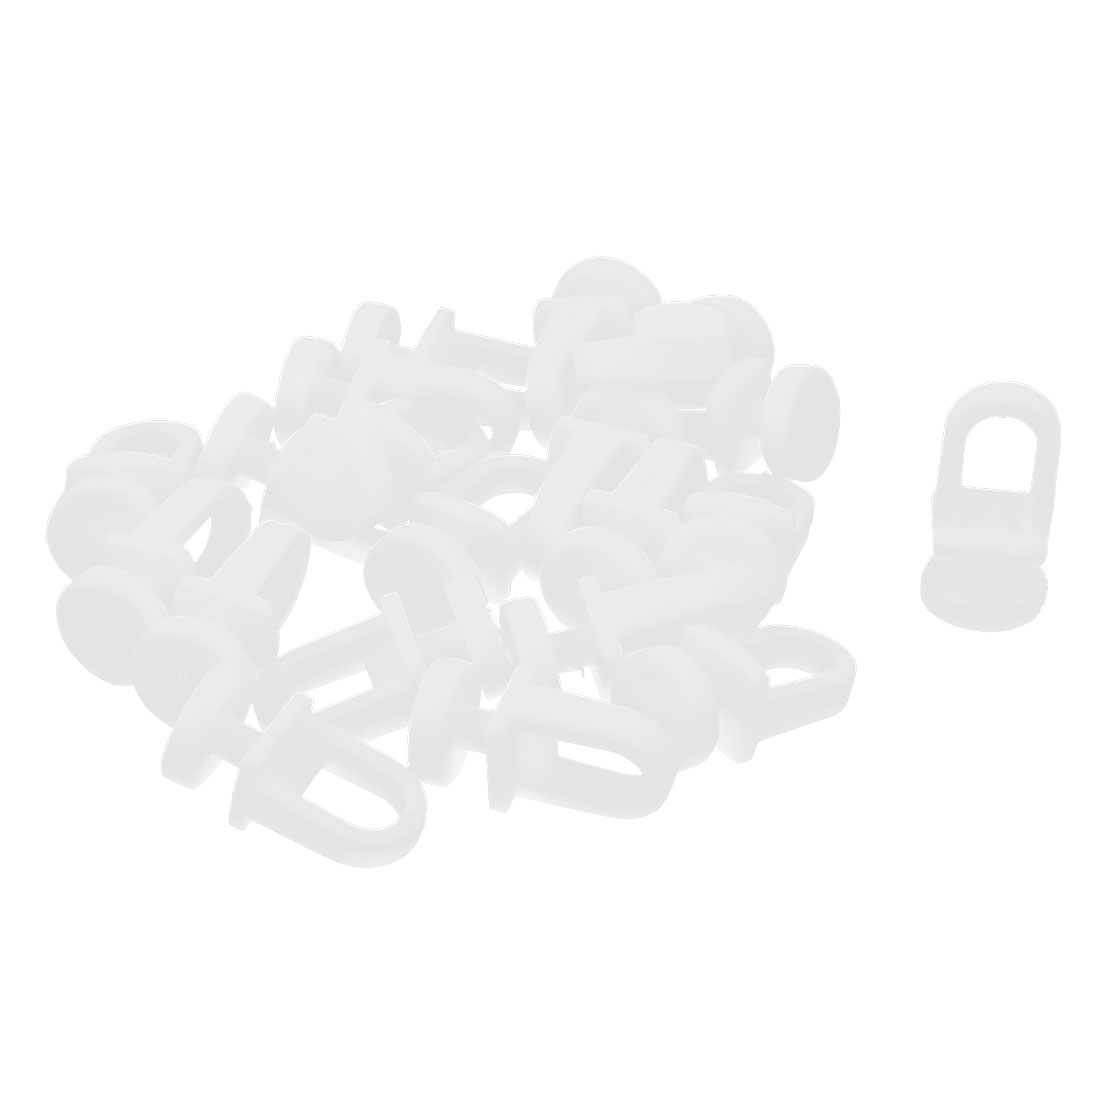 20pcs Plastic Window Curtain Track Carrier Slide Wheels Rollers White